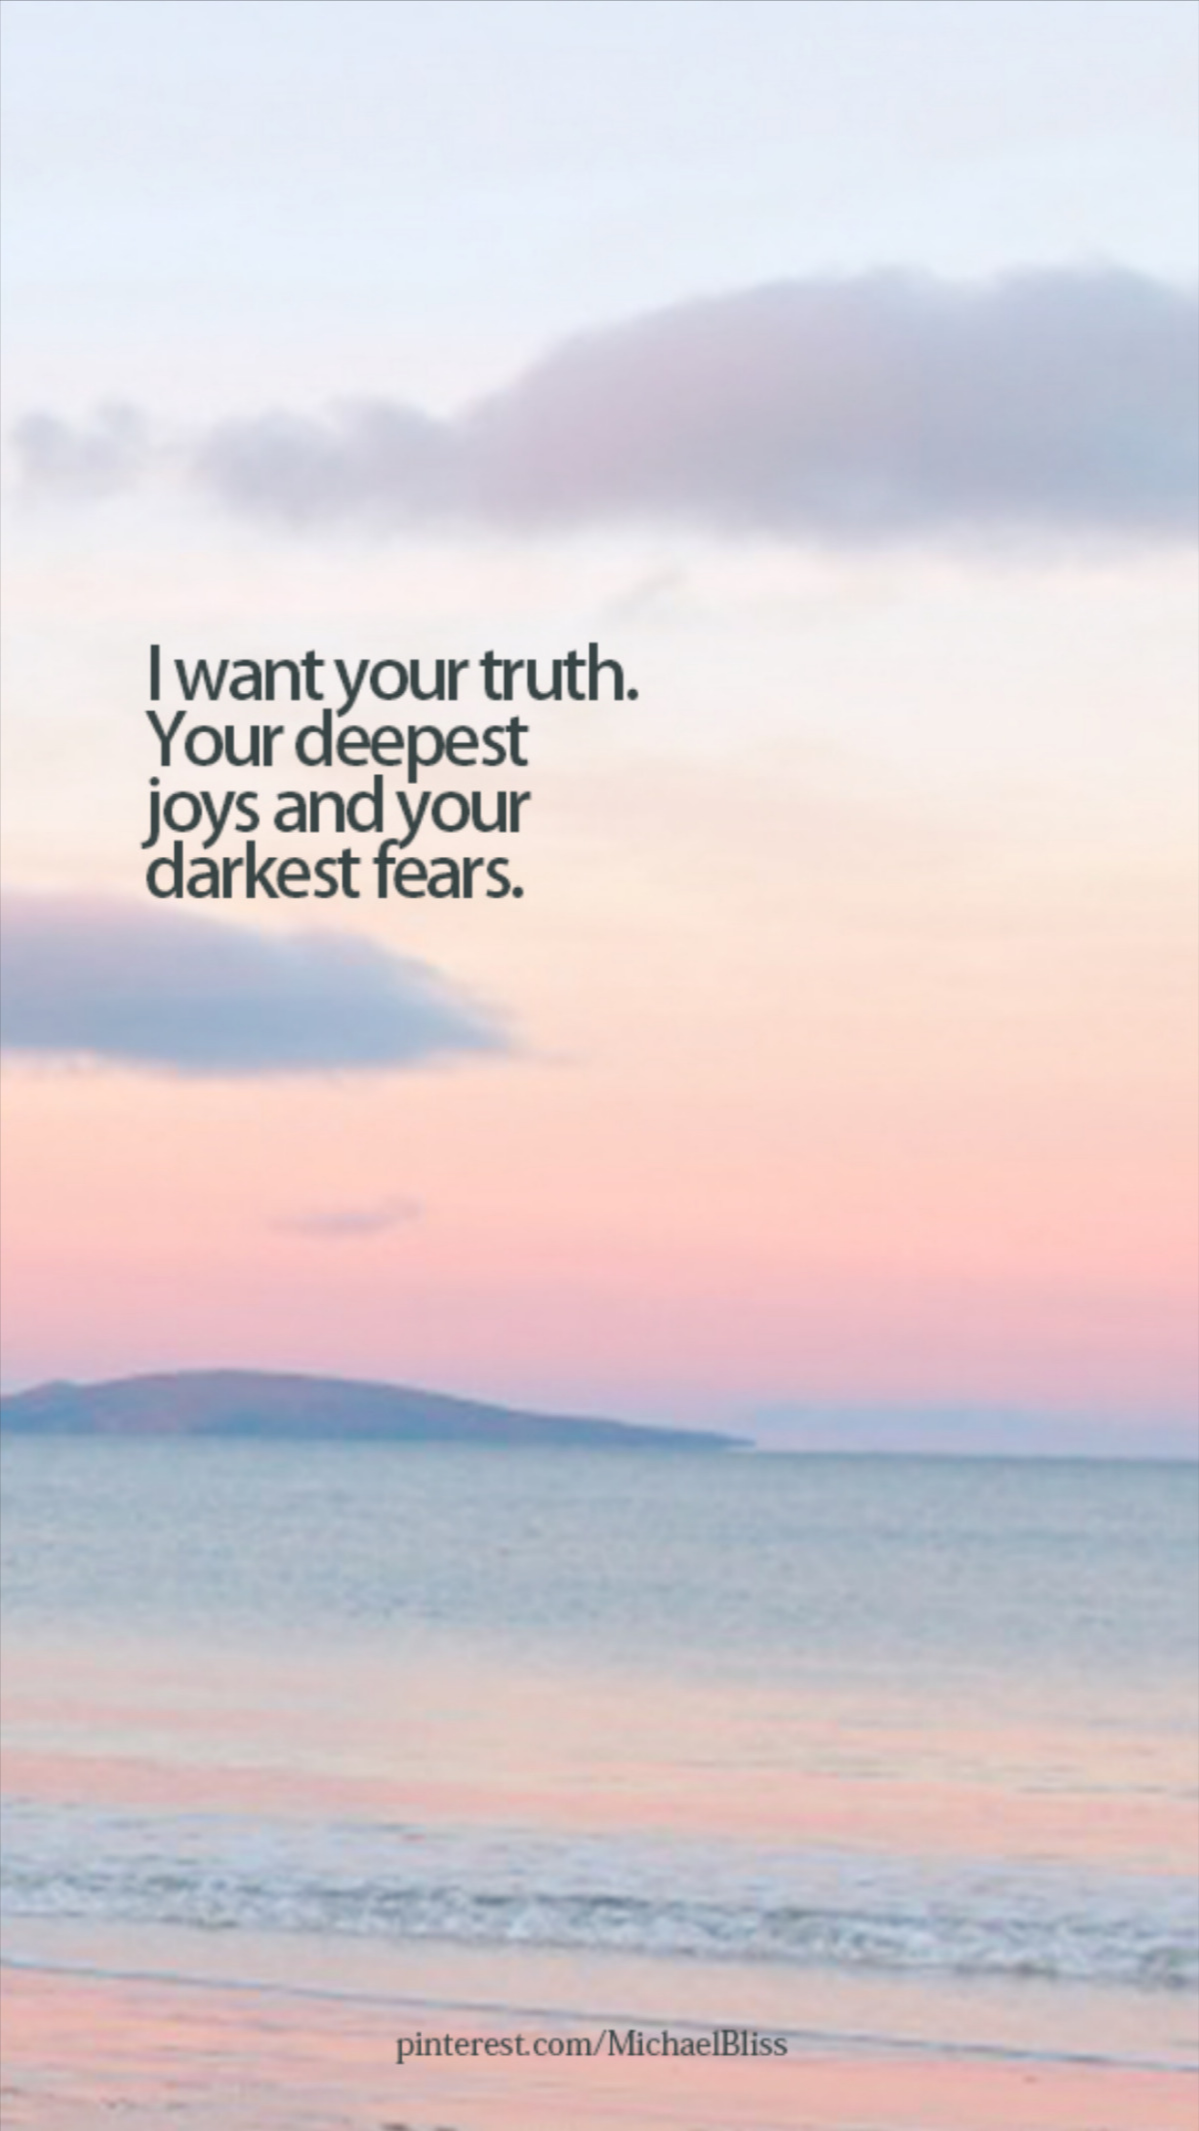 I want your truth. Your deepest joys and your darkest fears.